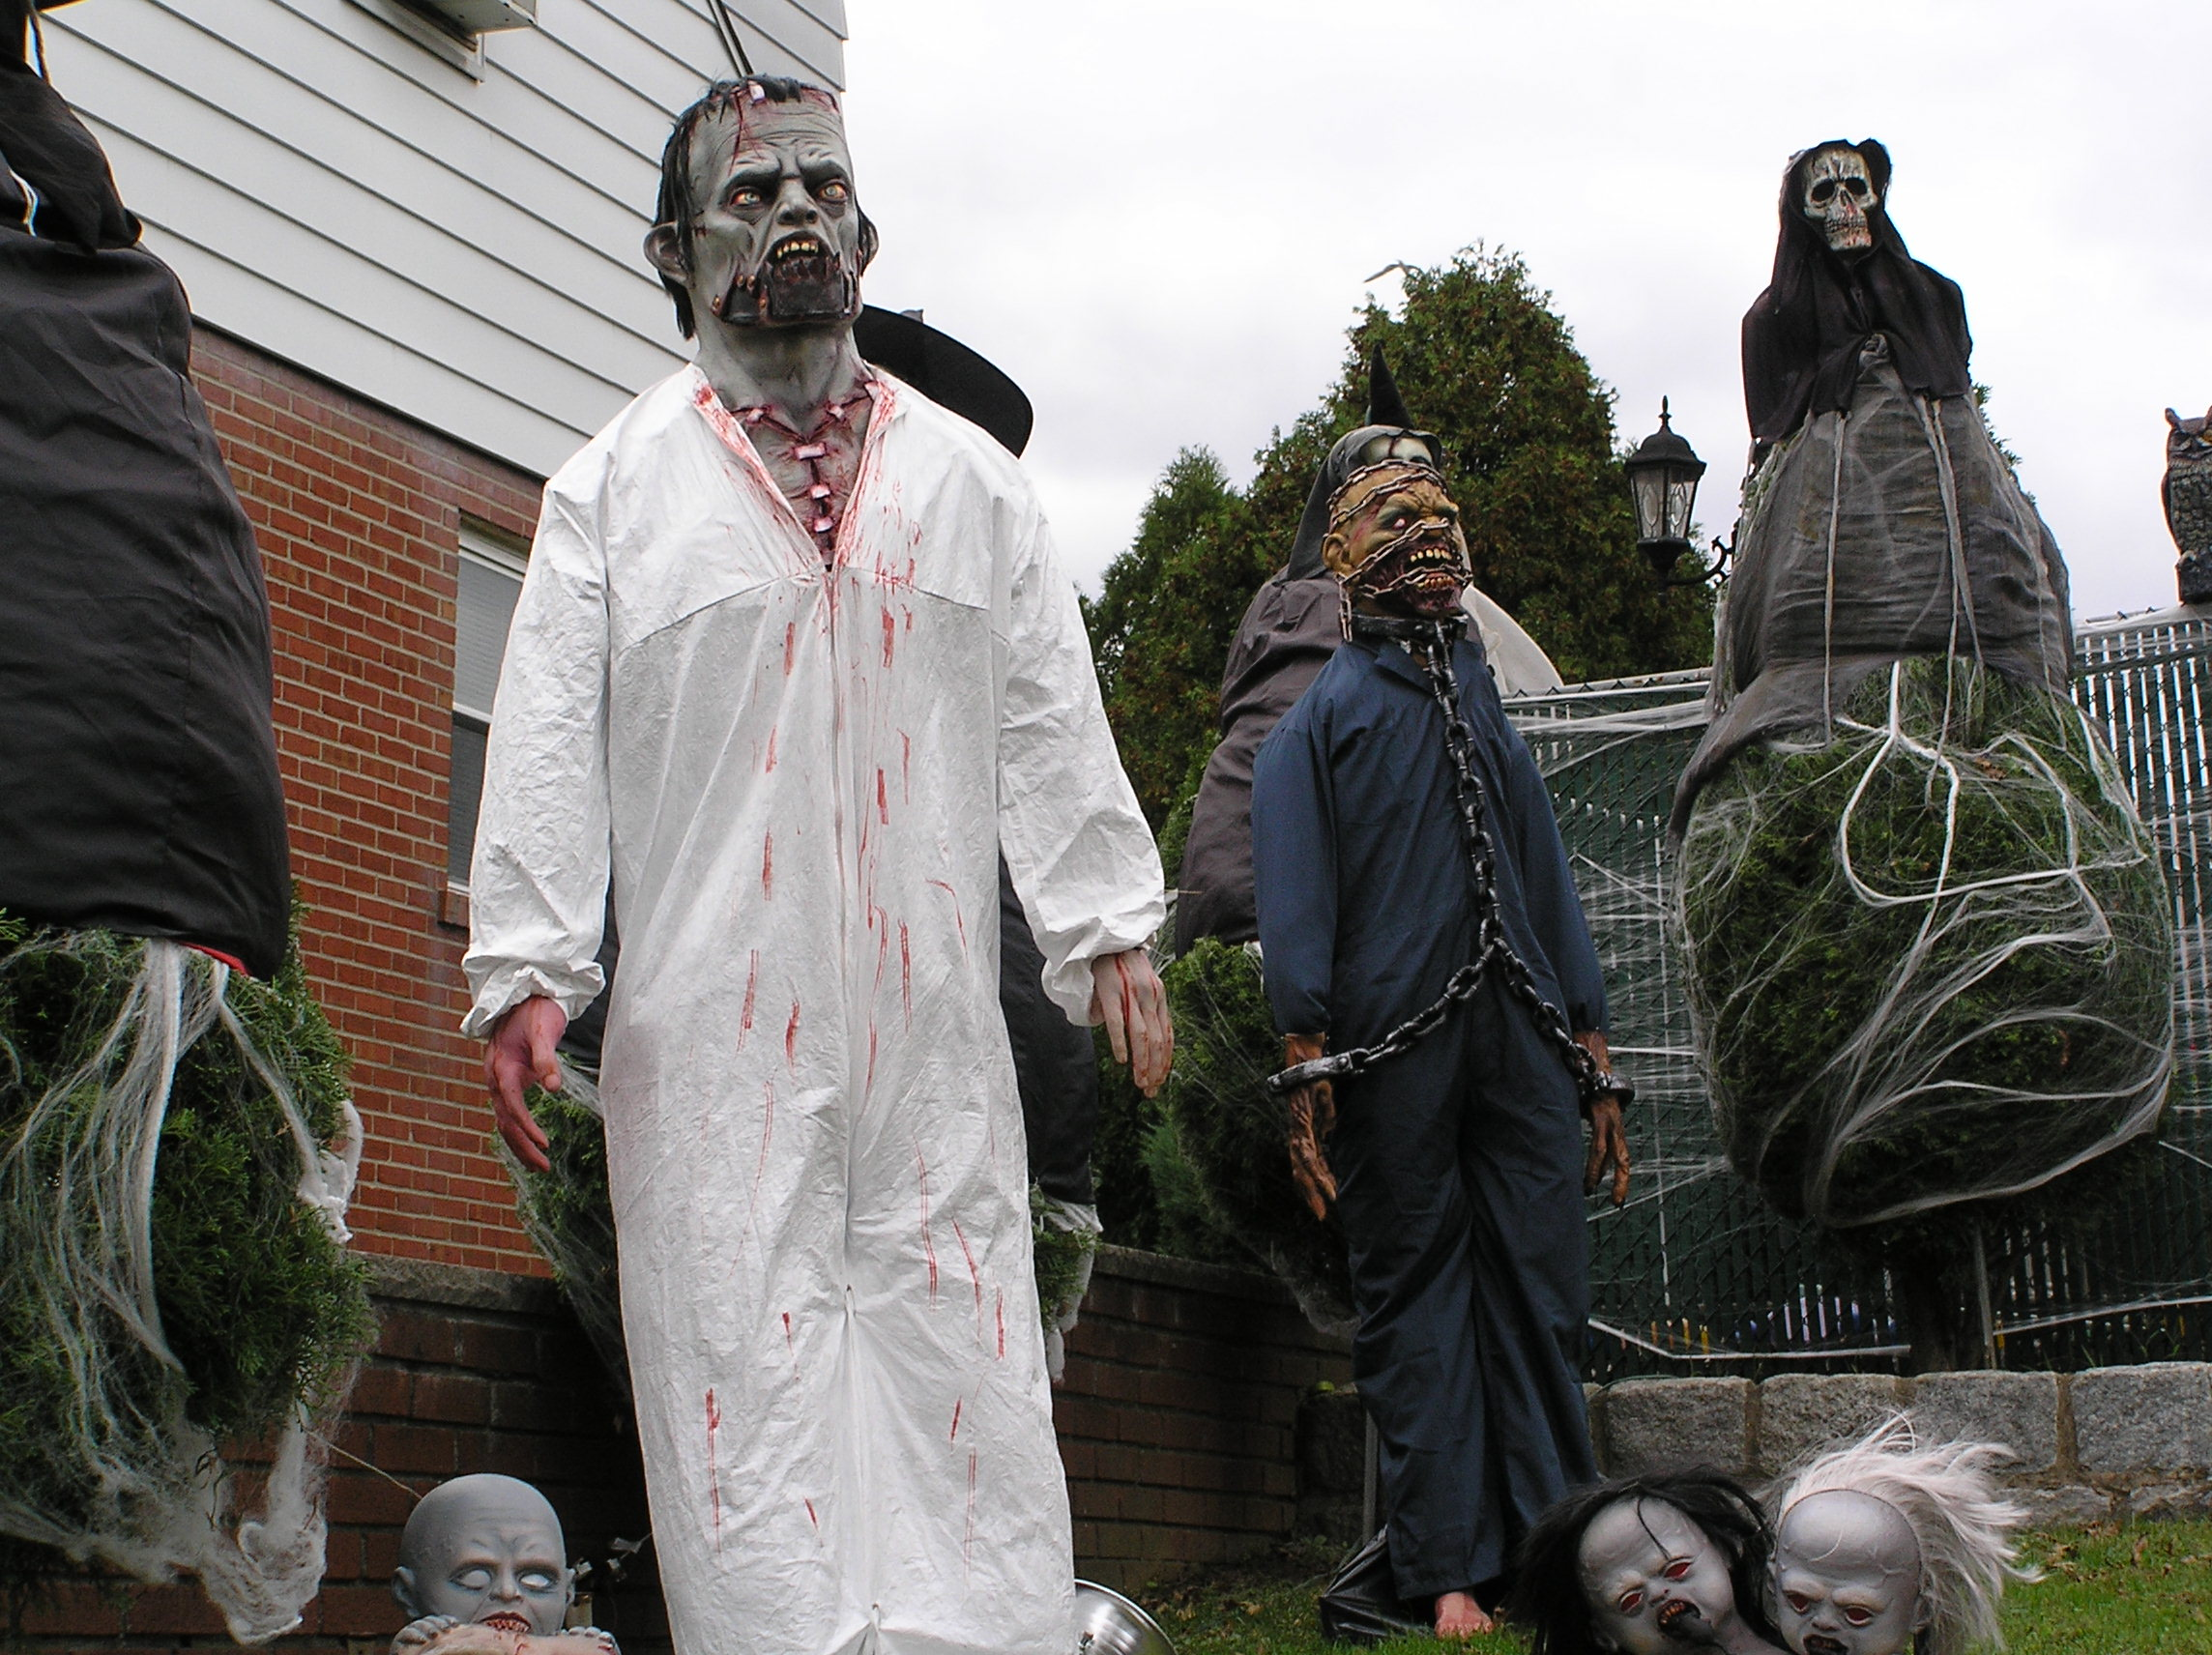 Filescary Halloween Costumes 2011jpg Wikimedia Commons